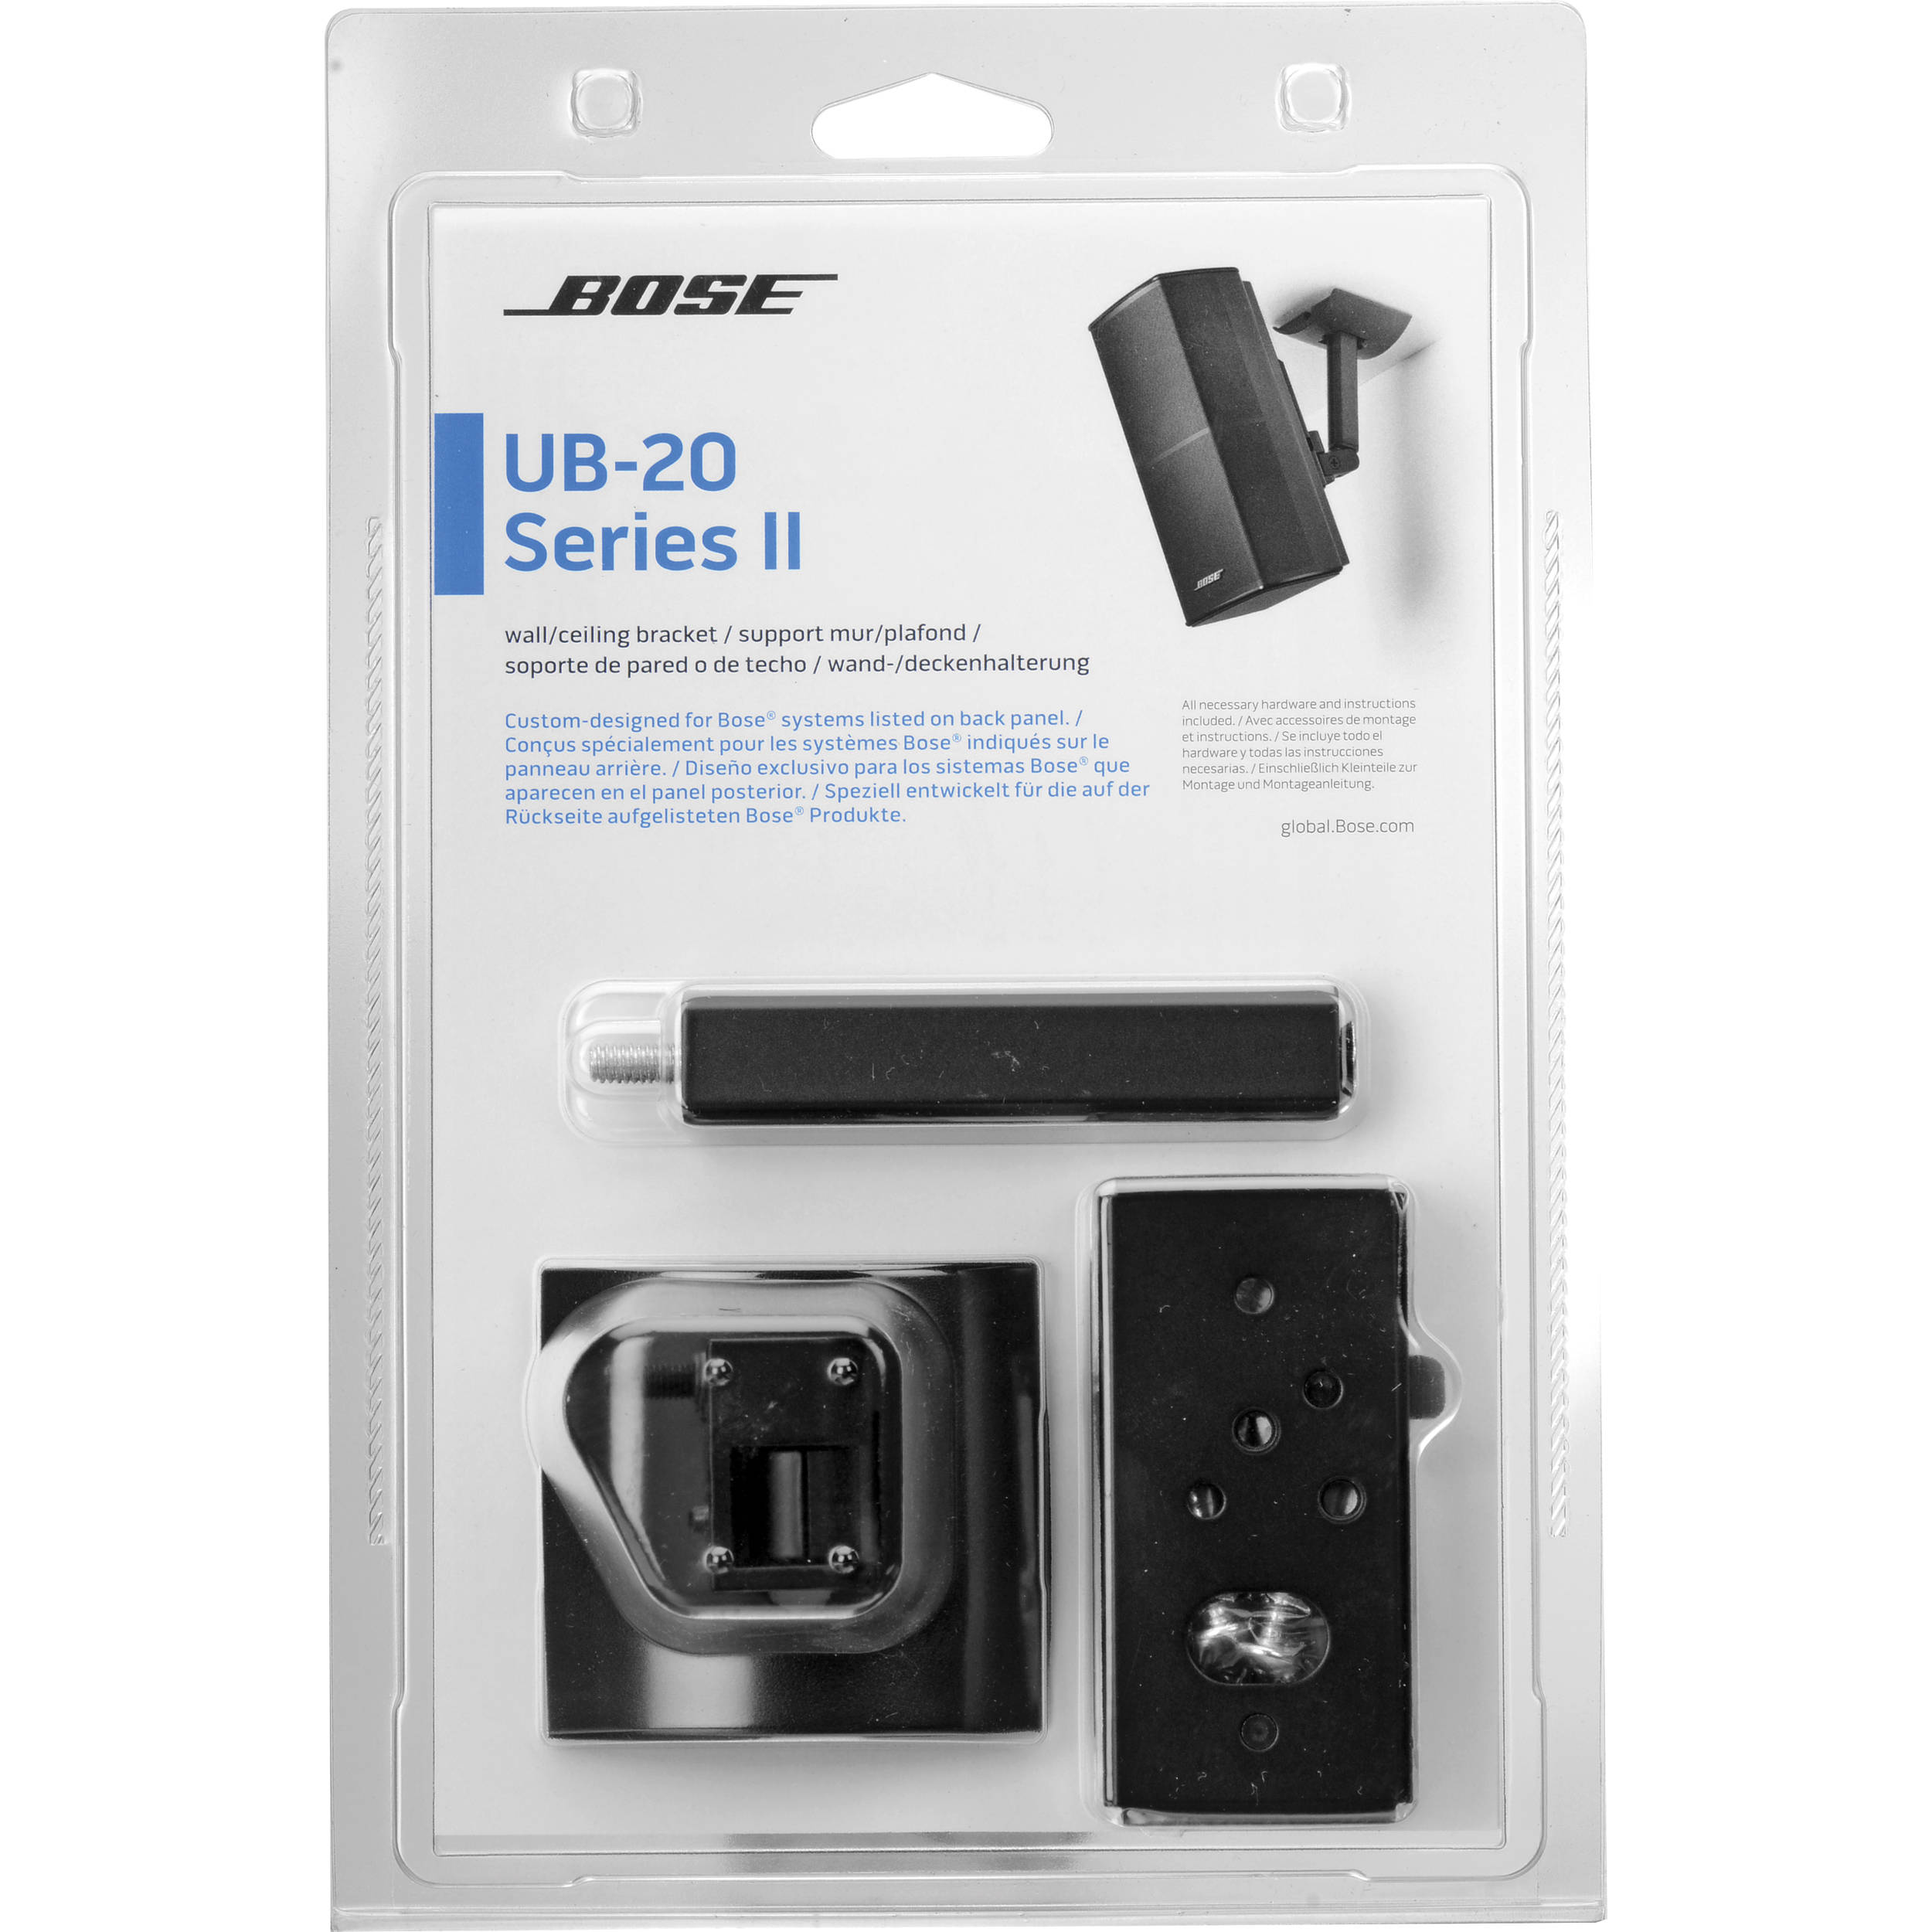 Bose UB-20 Series II Wall/Ceiling Bracket (Black) 722141-0010